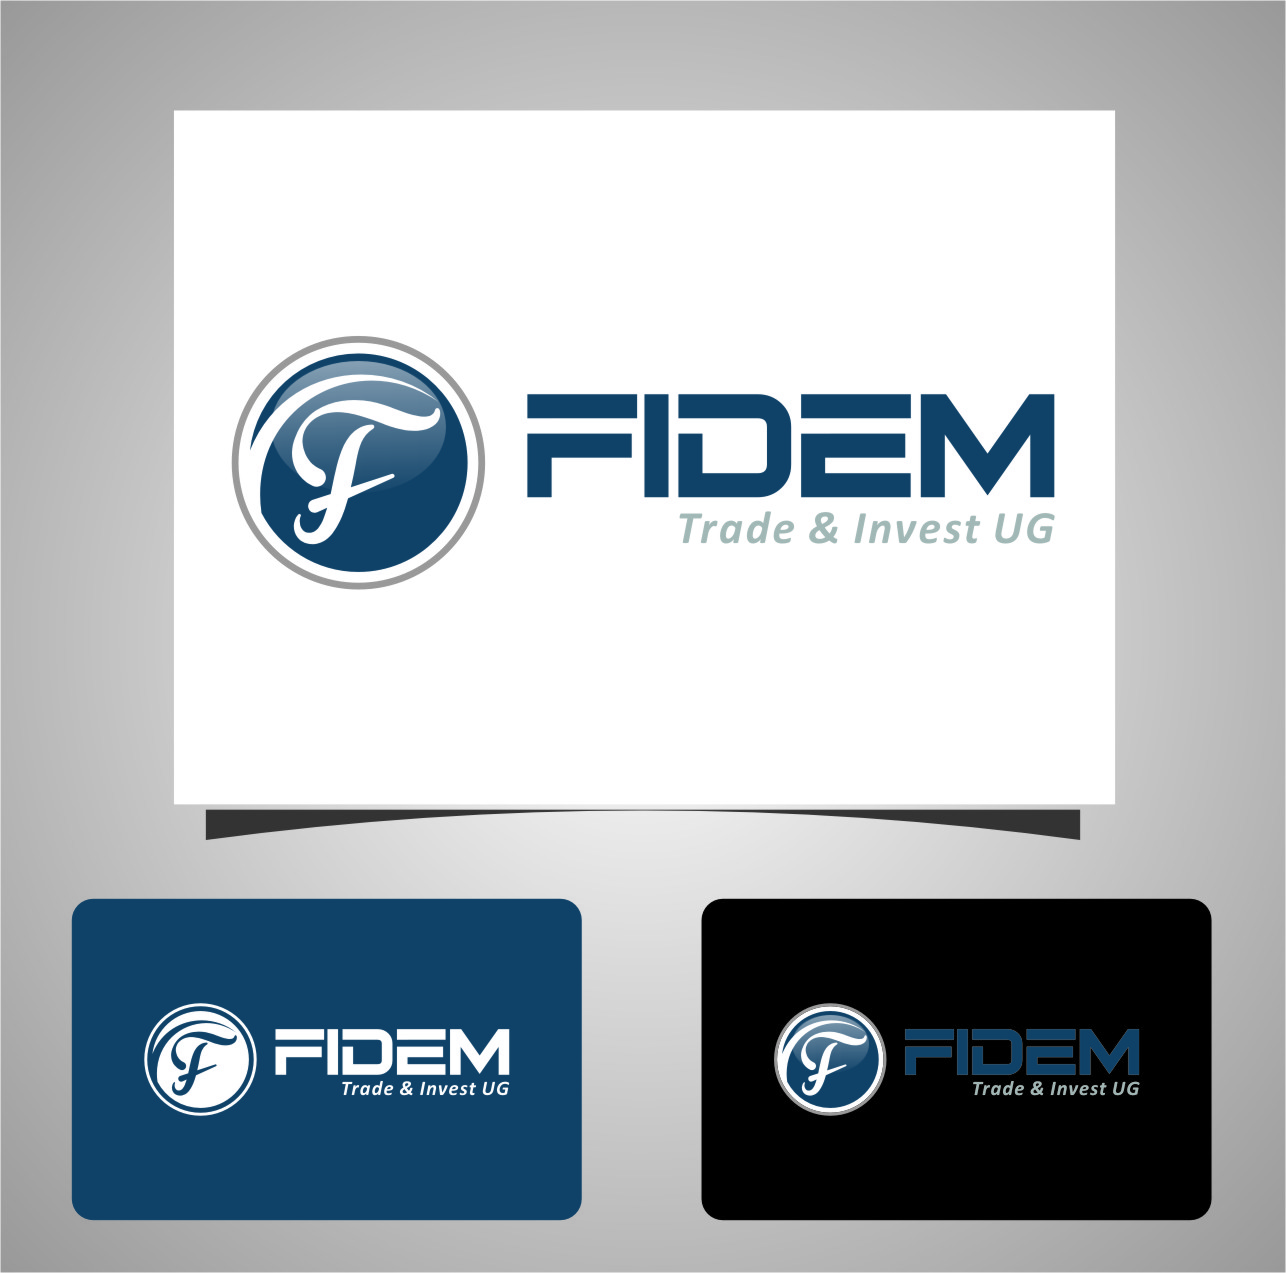 Logo Design by Ngepet_art - Entry No. 767 in the Logo Design Contest Professional Logo Design for FIDEM Trade & Invest UG.